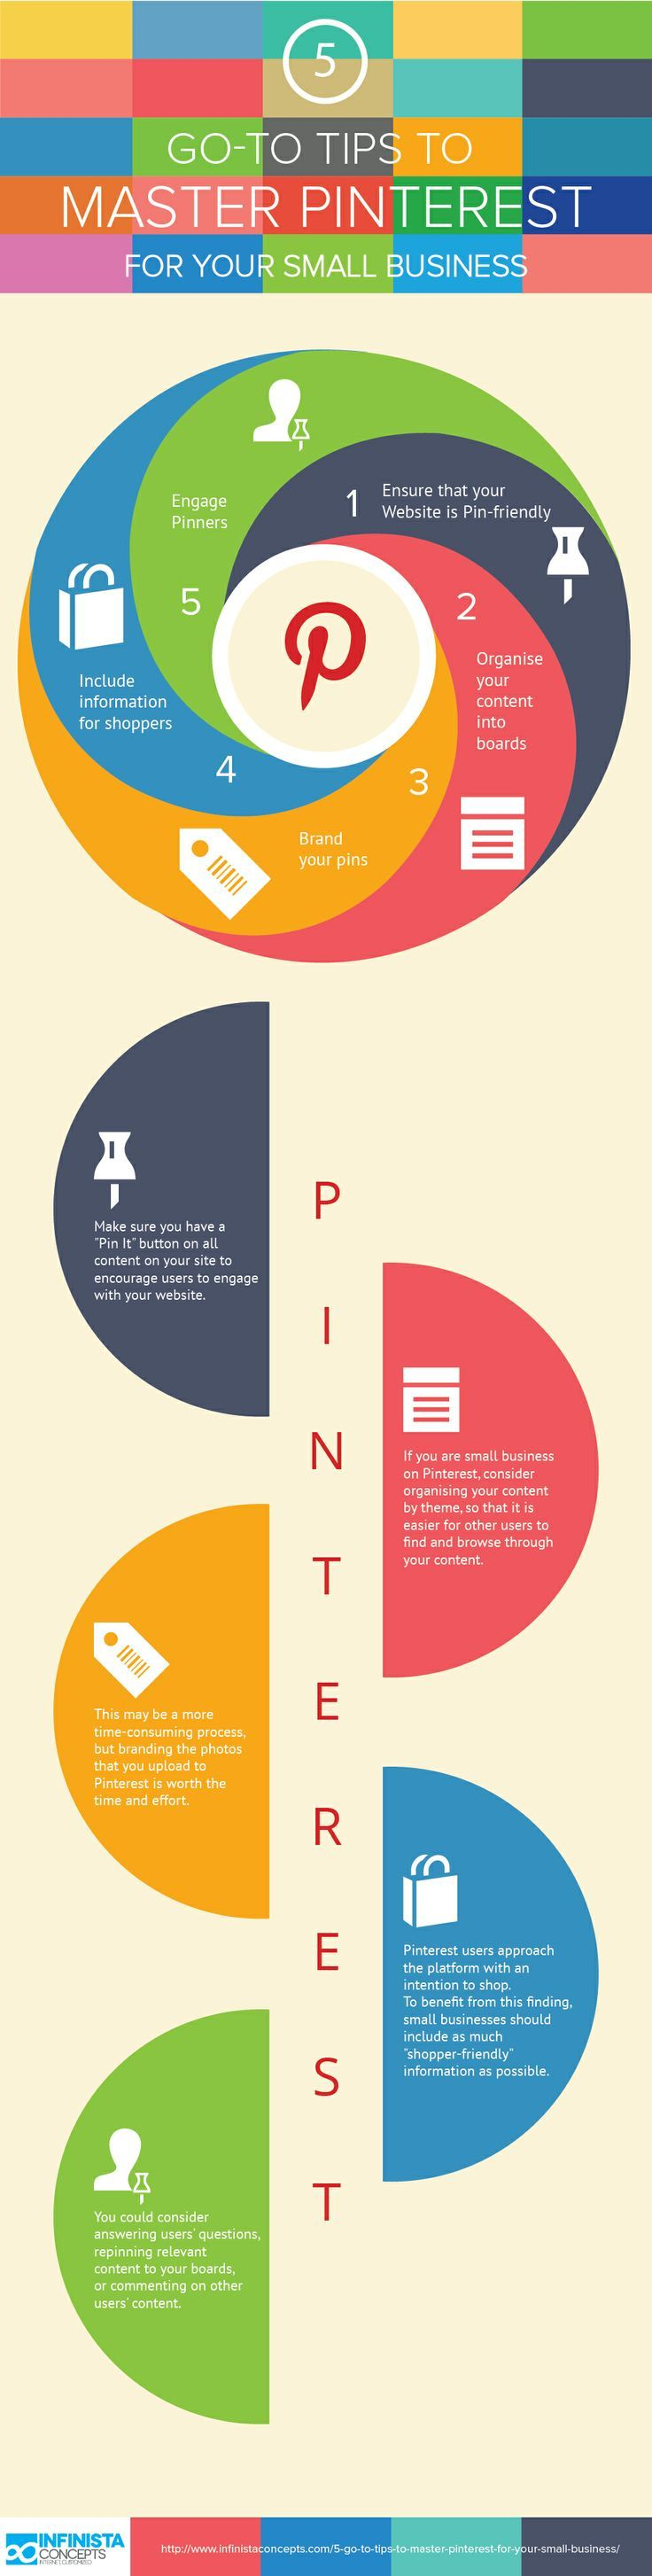 Here are 5 go-to tips on being a sensei master of #Pinterest: http://www.infinistaconcepts.com/5-go-to-tips-to-master-pinterest-for-your-small-business/ #socialmedia